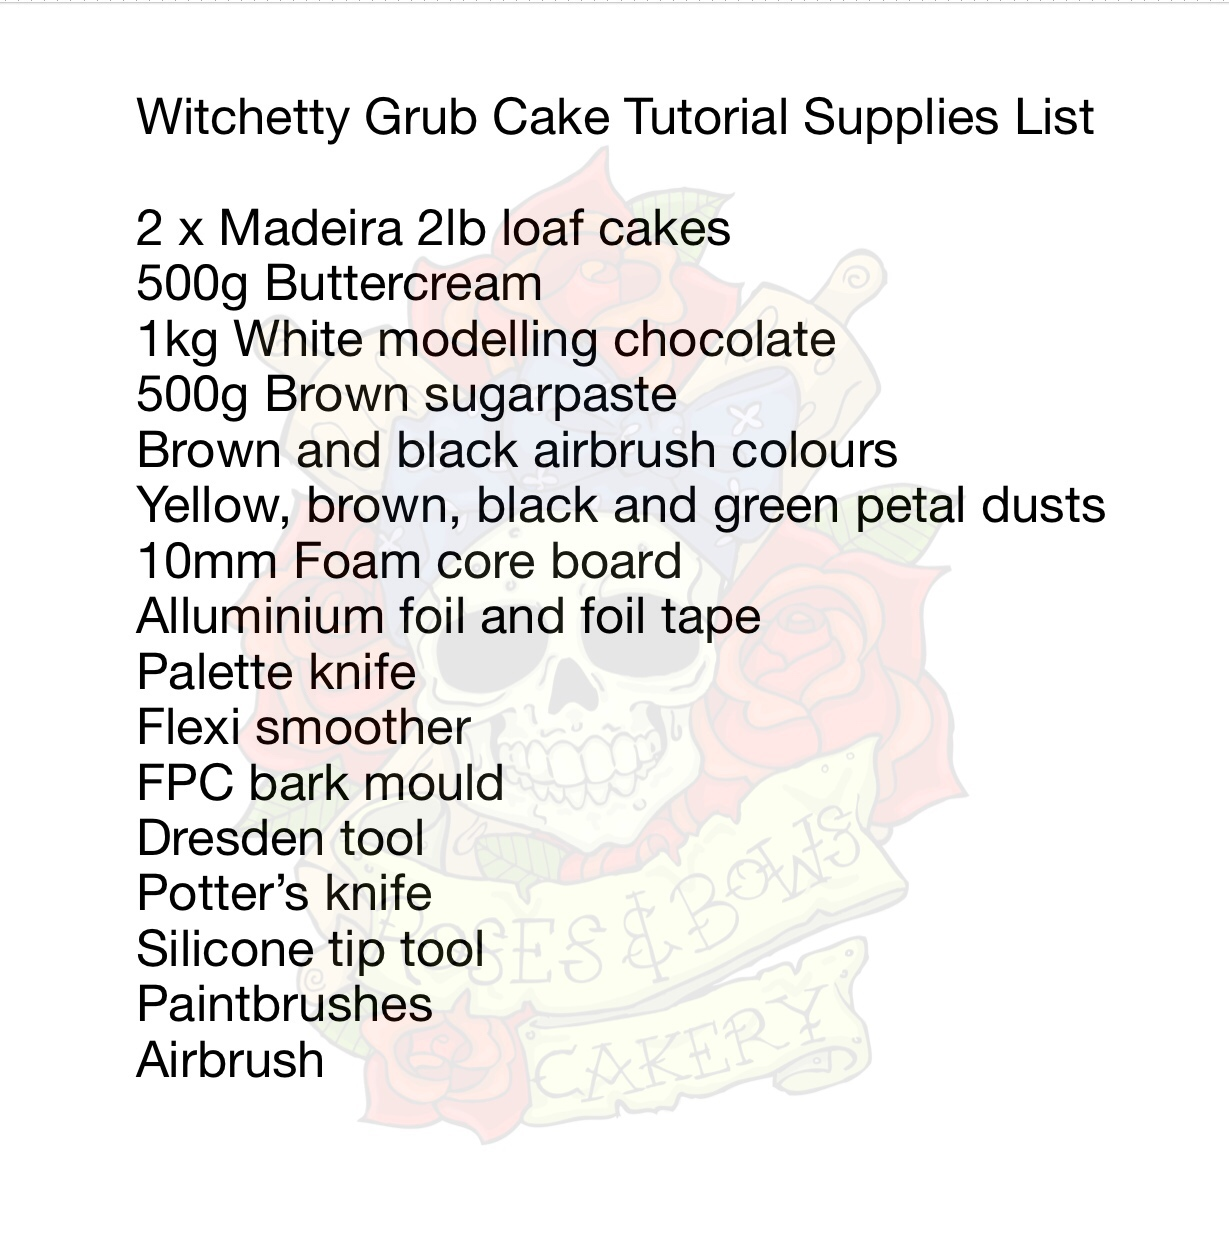 Witchetty Grub Supply List